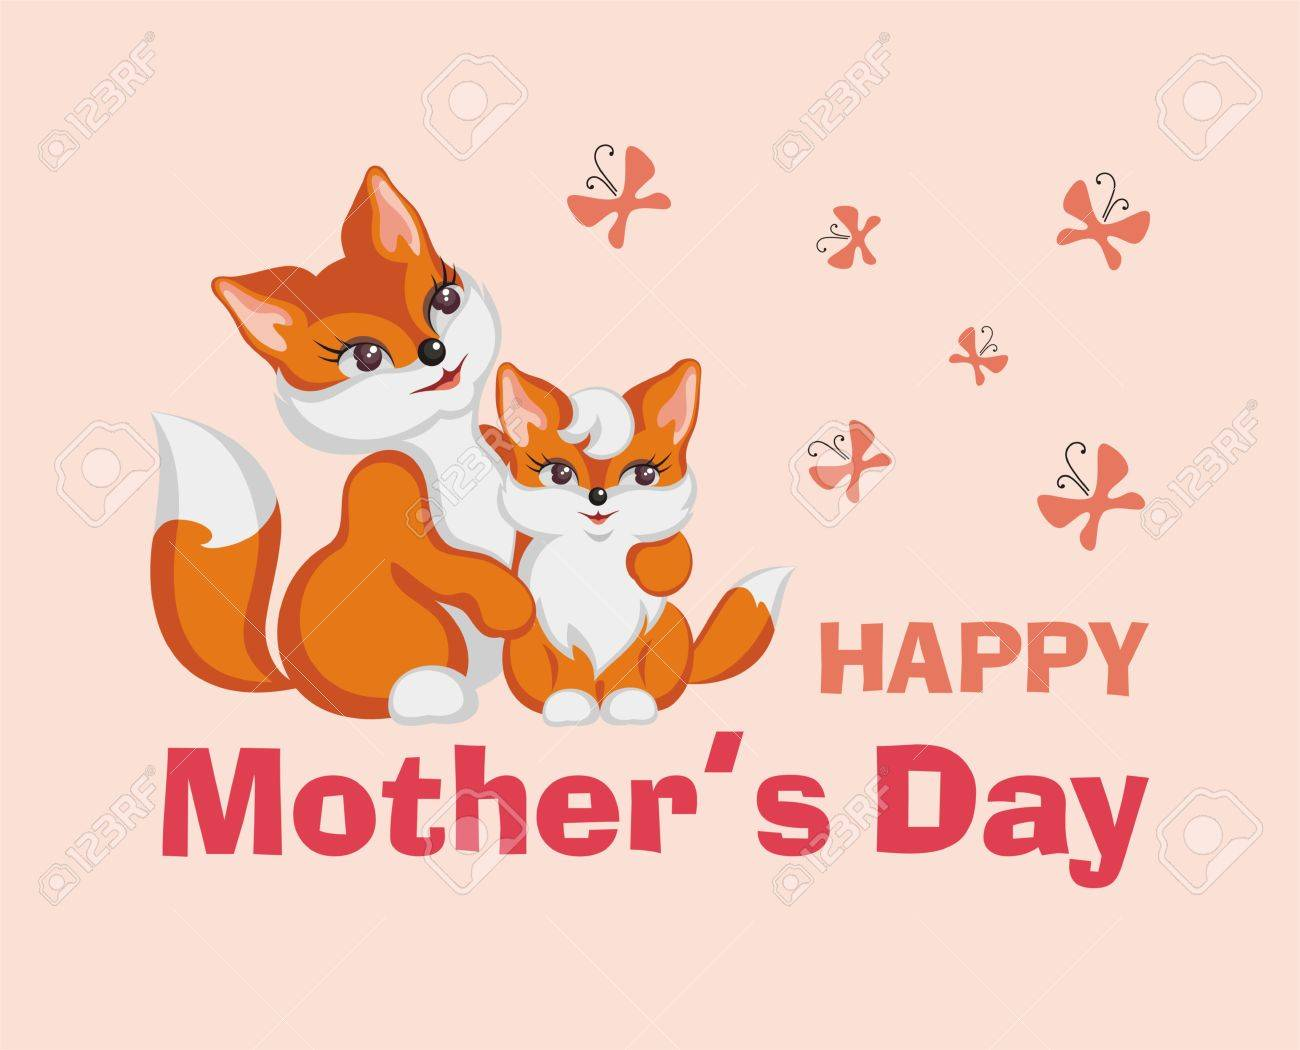 Happy Mothers Day Greeting Card With The Image Of Cute Animals